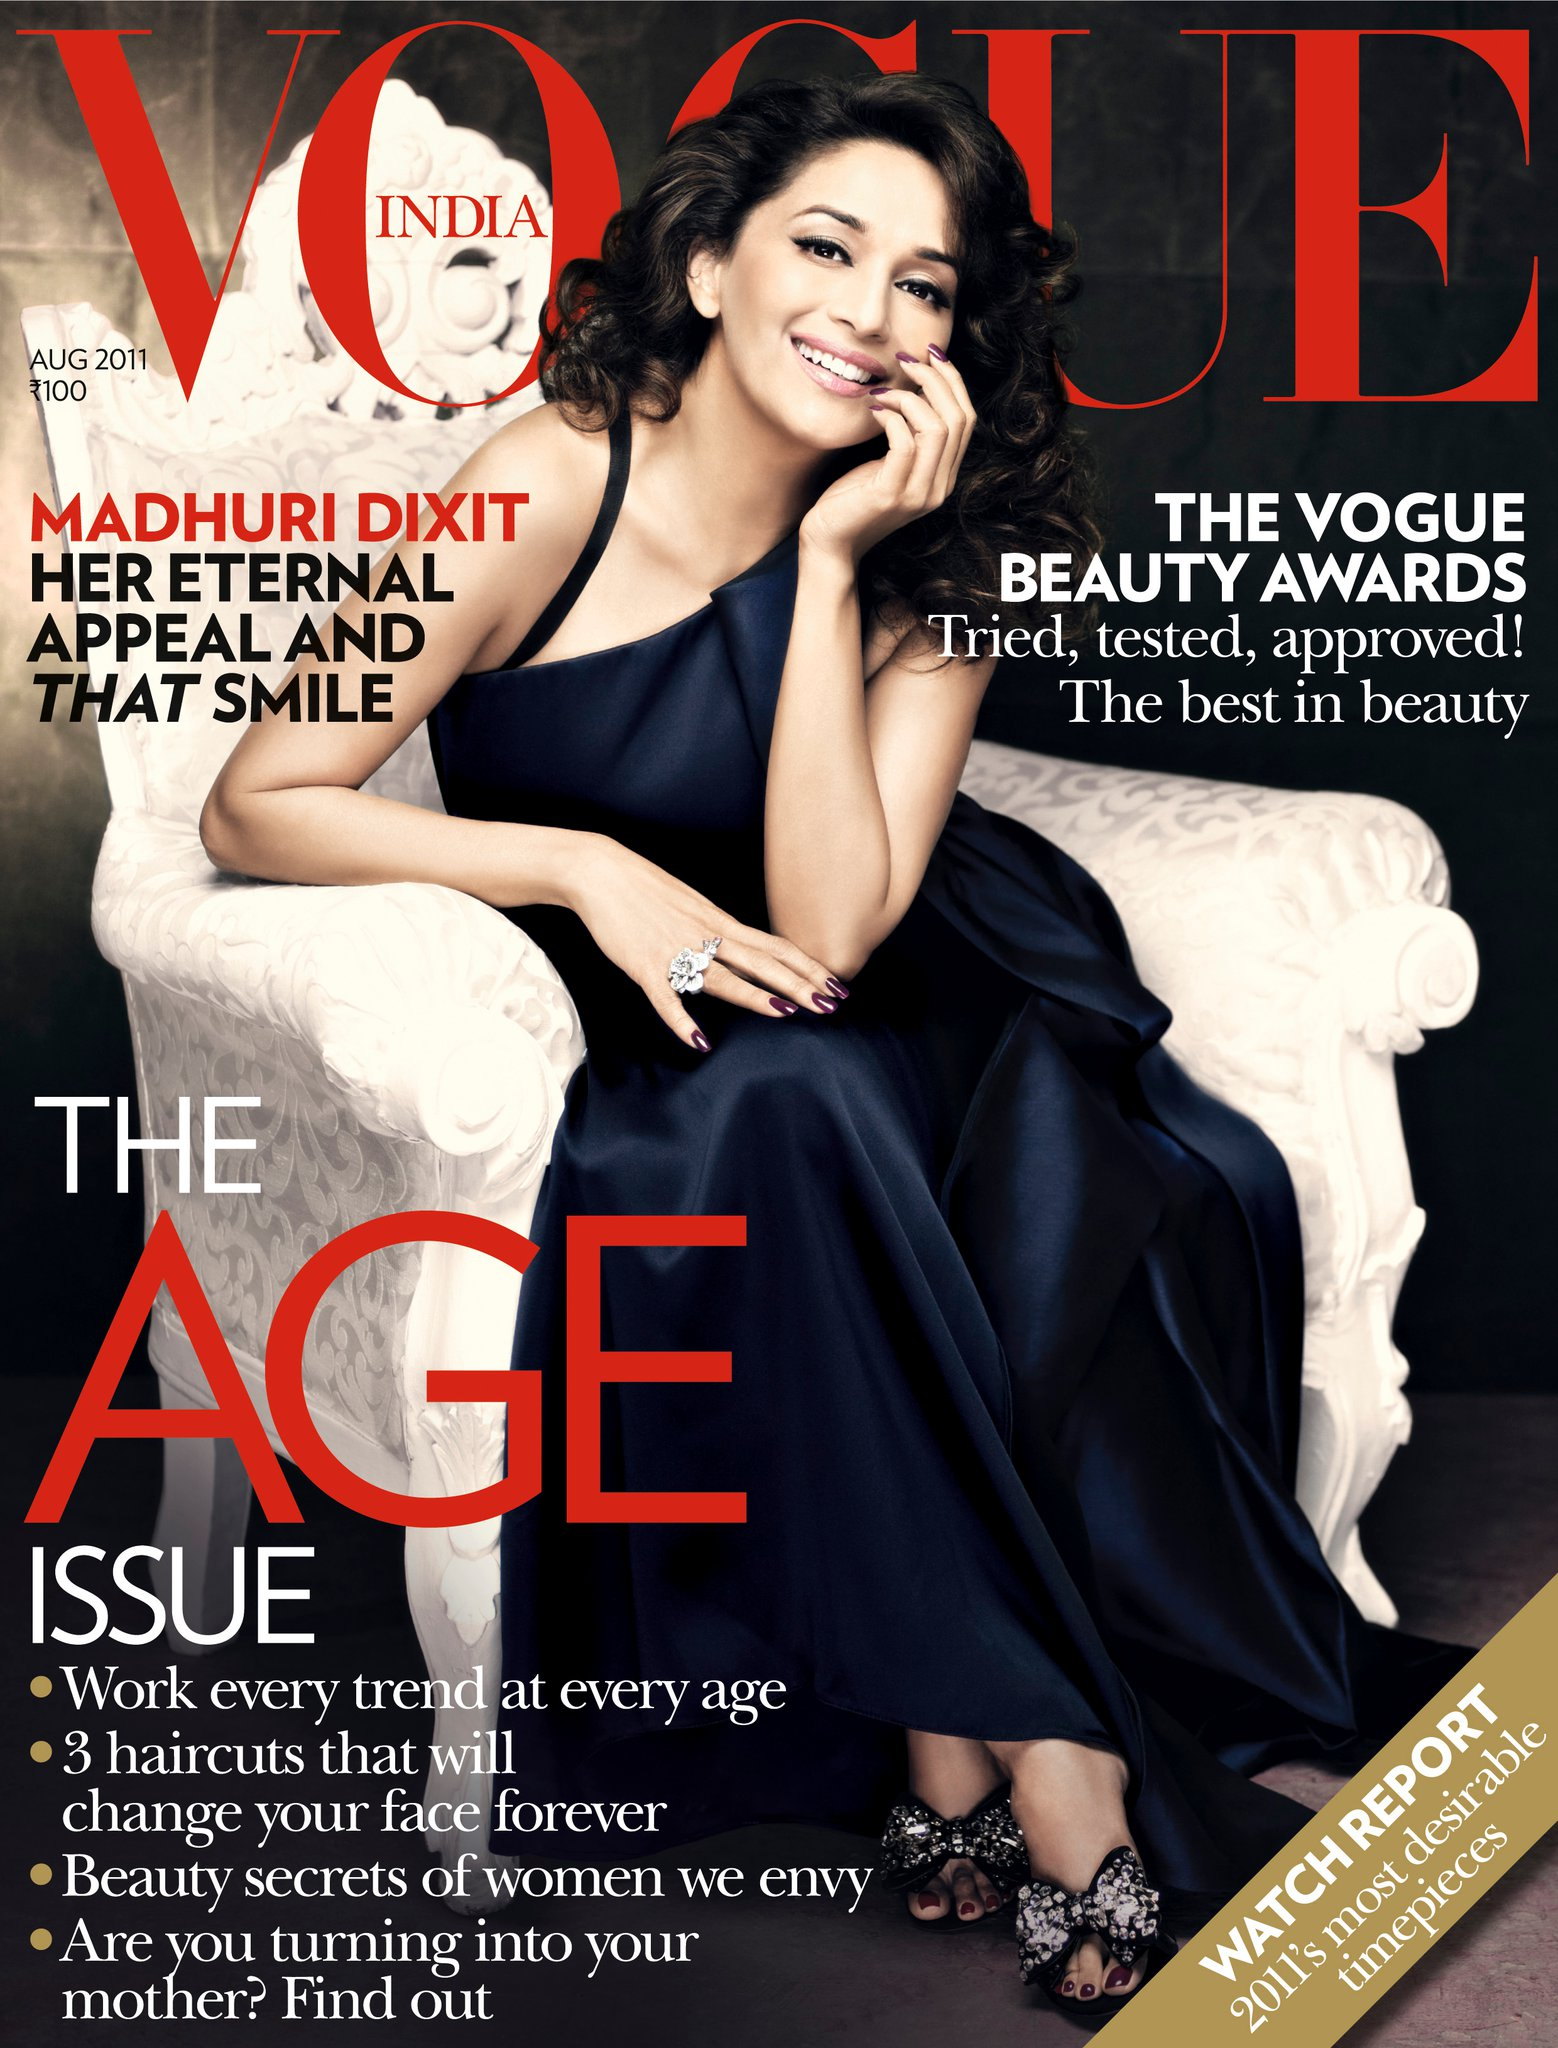 Vogue Magazine Uk May 2015 Issue: Candy & Couture